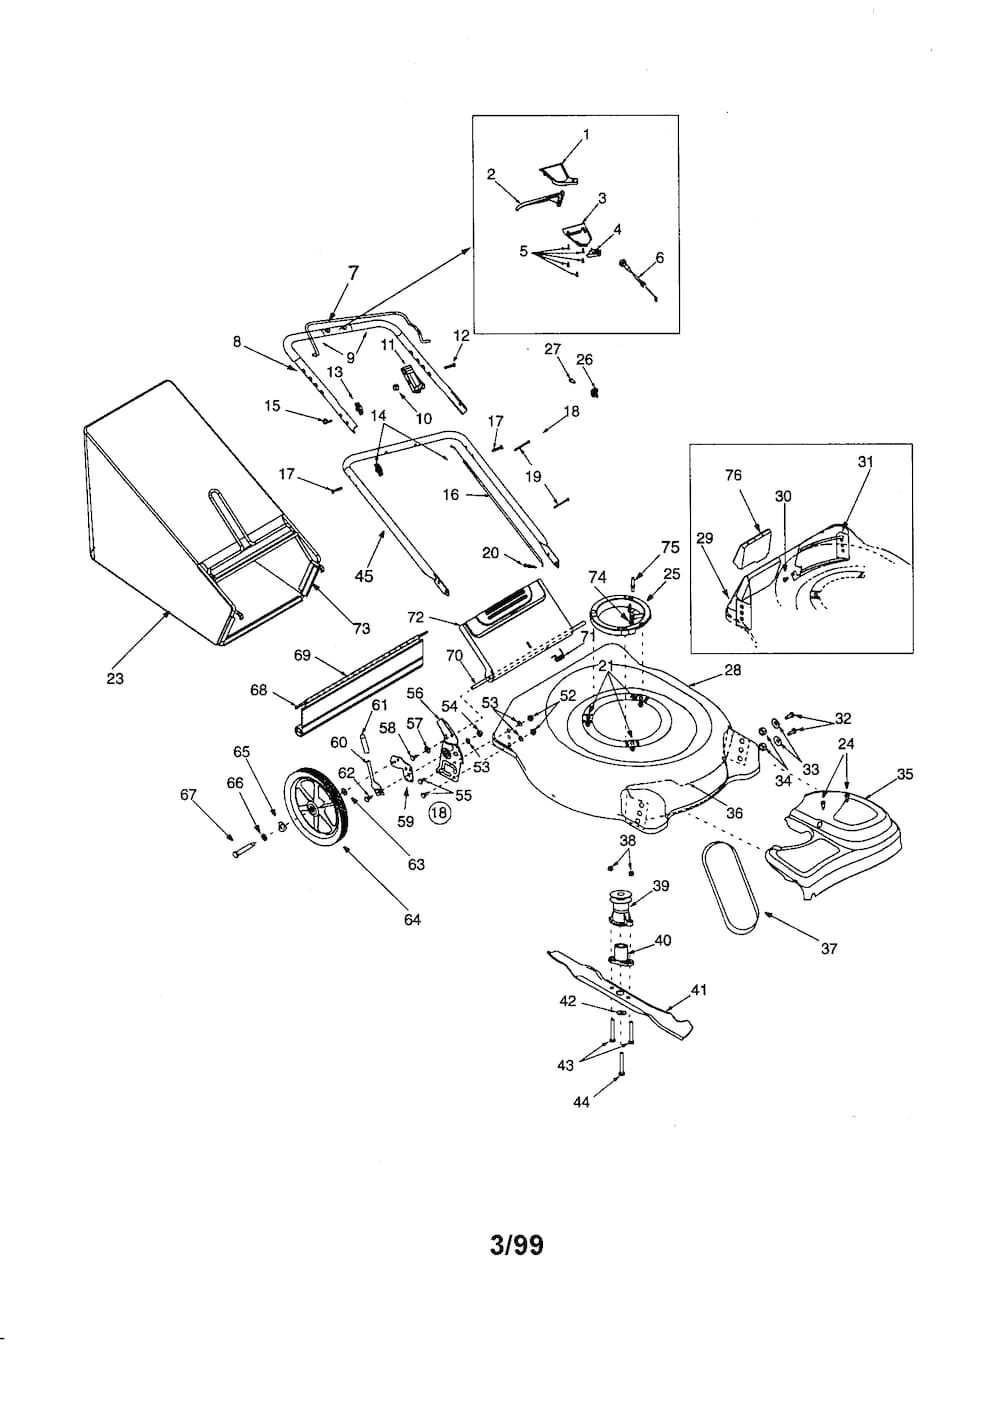 Craftsman Self-Propelled Mower Parts | Model 247375590 | Sears throughout Craftsman Self Propelled Lawn Mower Parts Diagram